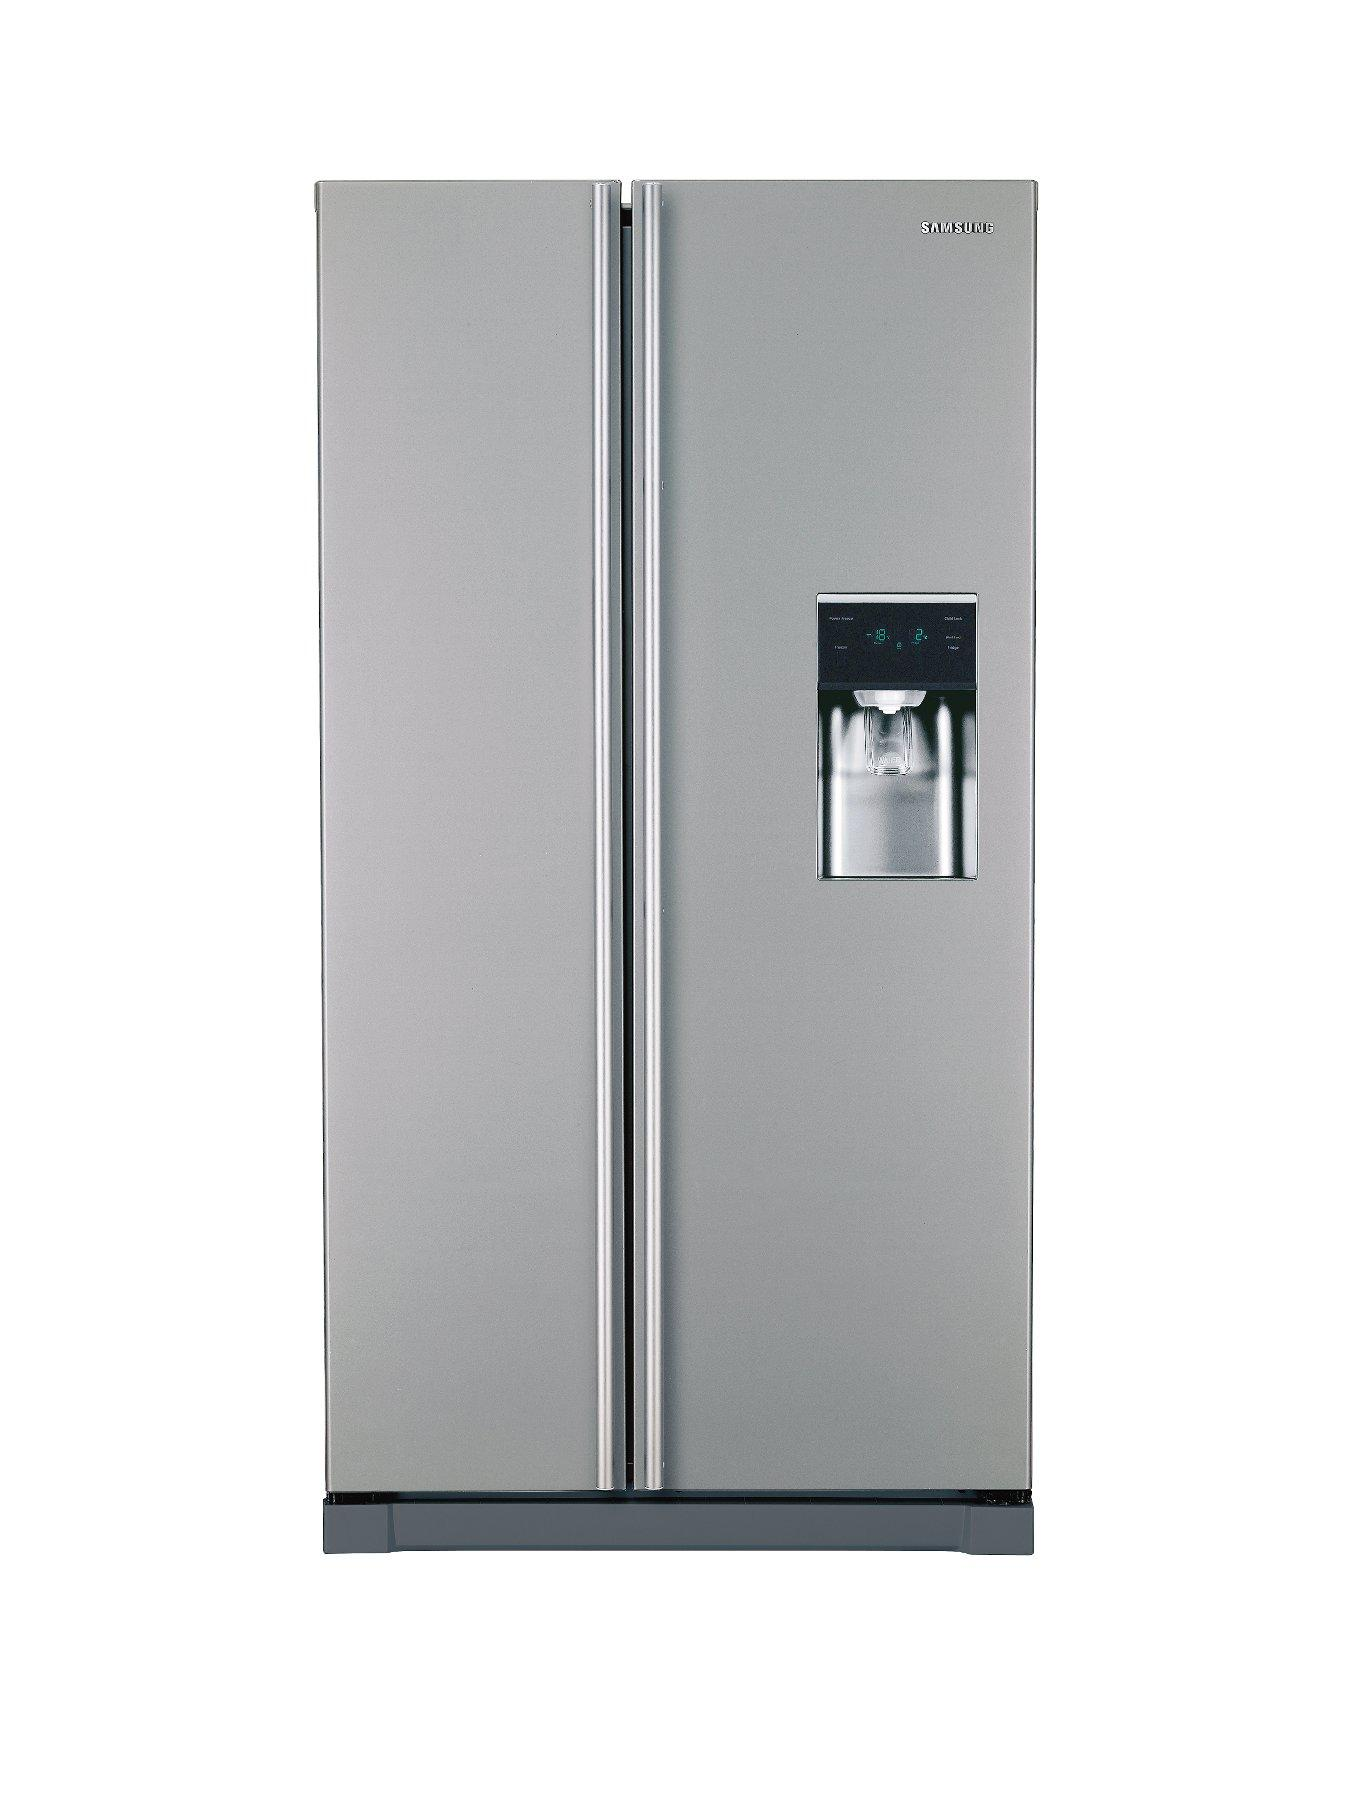 1/XEU USA Style Fridge Freezer - Grey